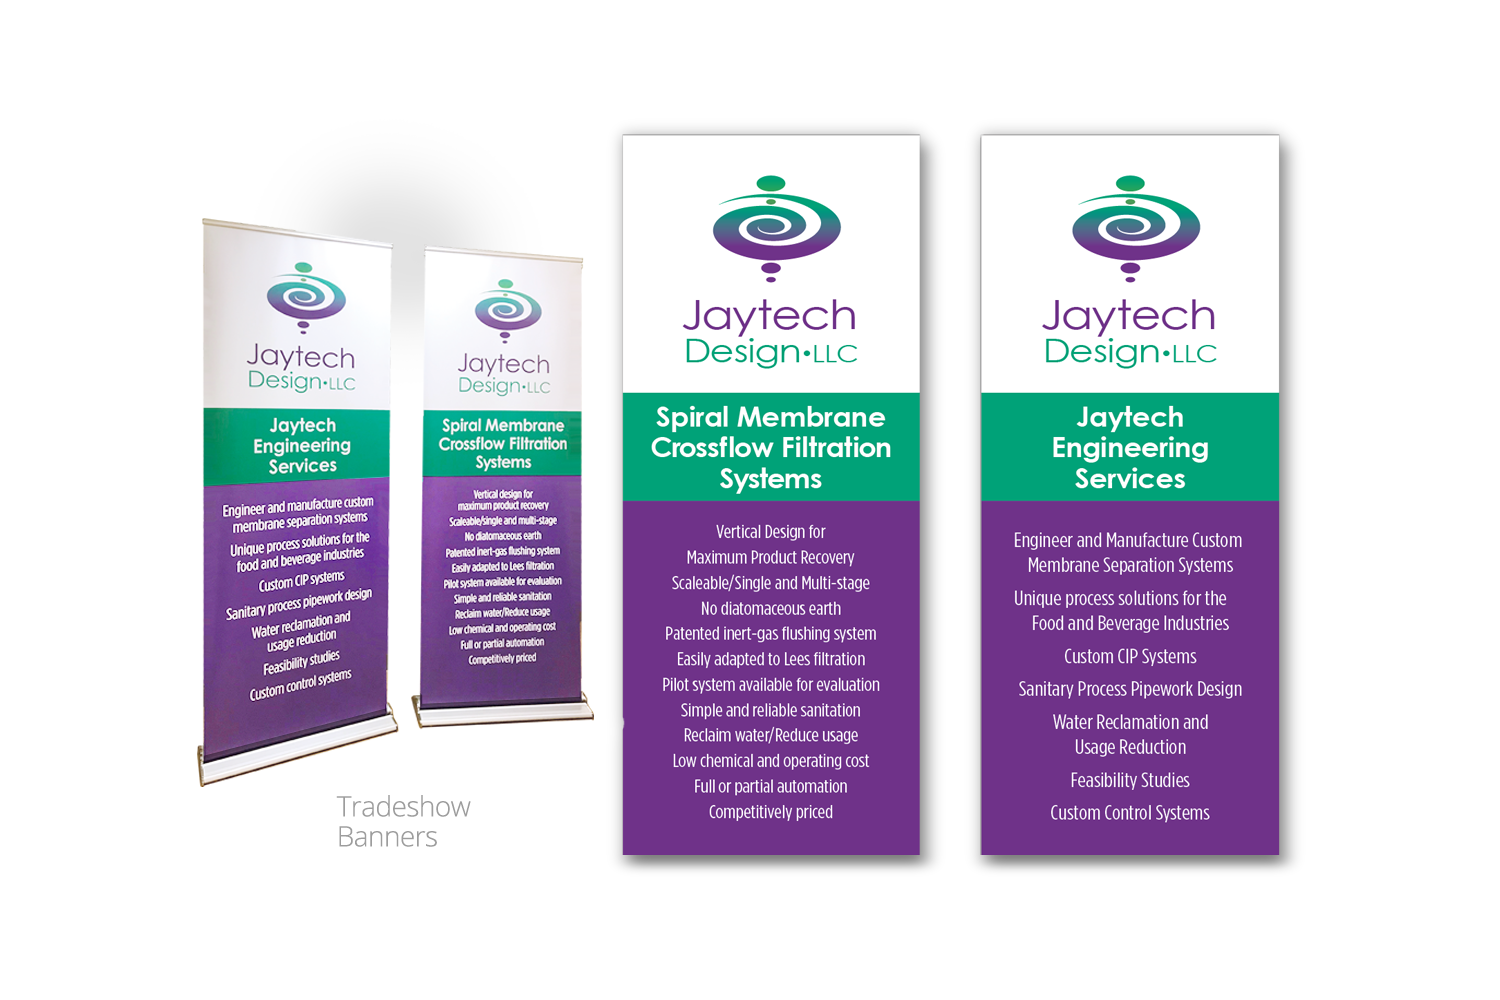 Tradeshow banners for Jaytech Design by DMI Agency